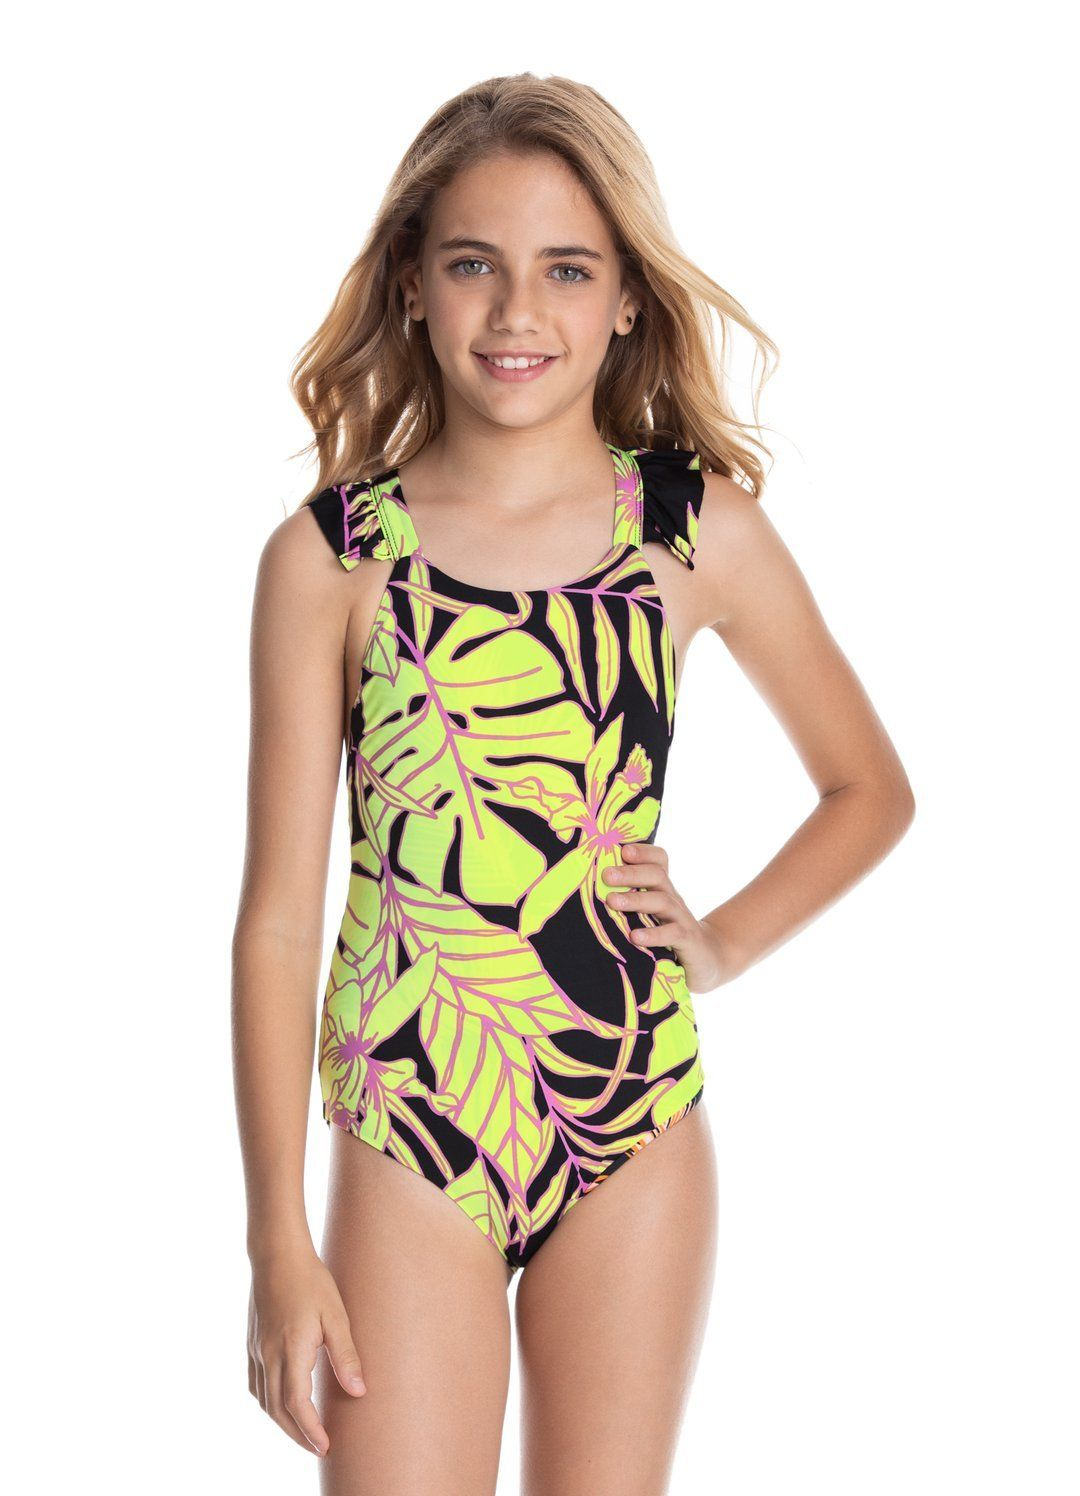 Tropic Tropicus One Piece LITTLE GIRLS SWIMWEAR MAAJI